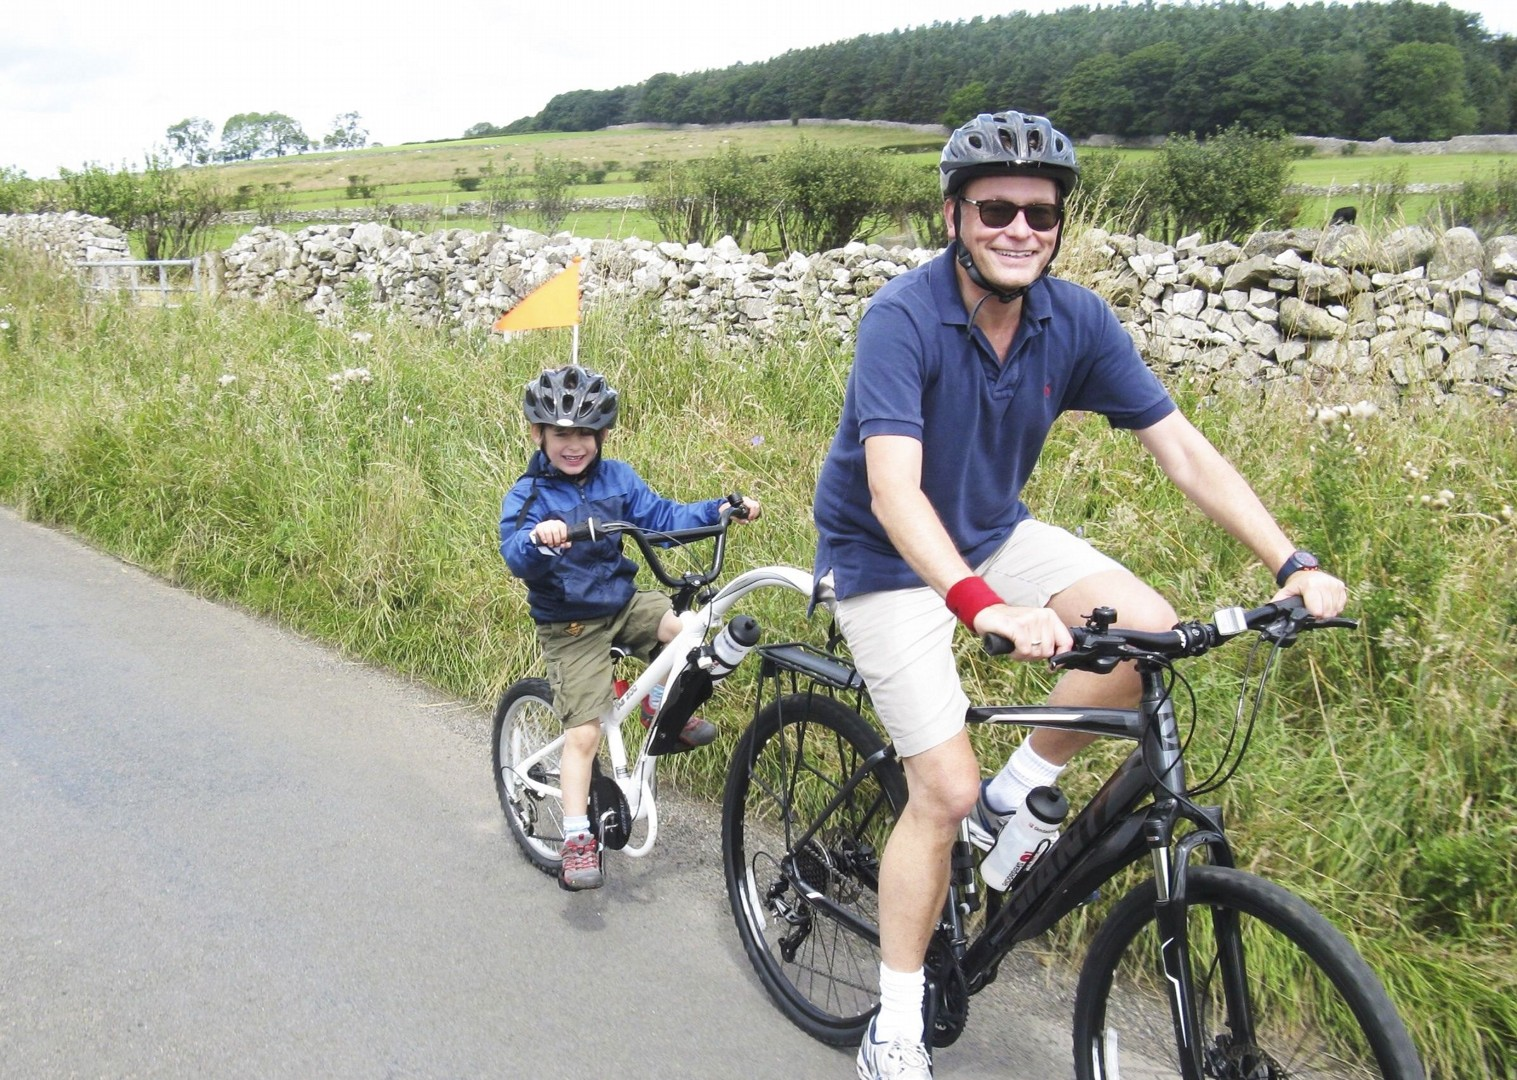 family-bike-skills-weekend-lake-district-uk.jpg - UK - Lake District - Guided Family Bike Skills - Family Cycling